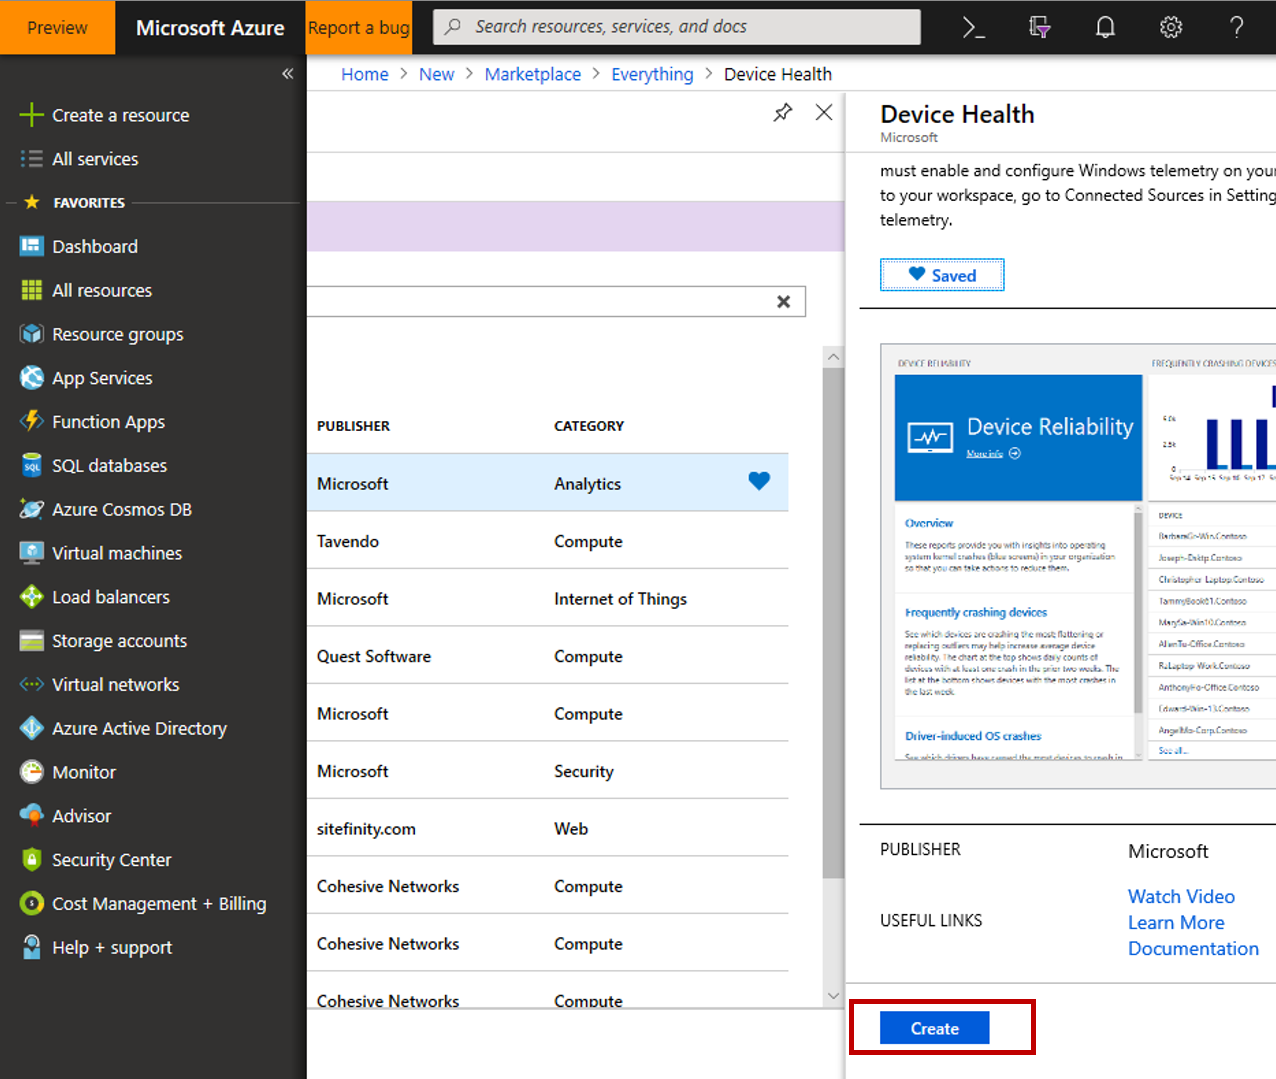 Azure portal showing Device Health fly-in and Create button highlighted(images/CreateSolution-Part2-Create.png)